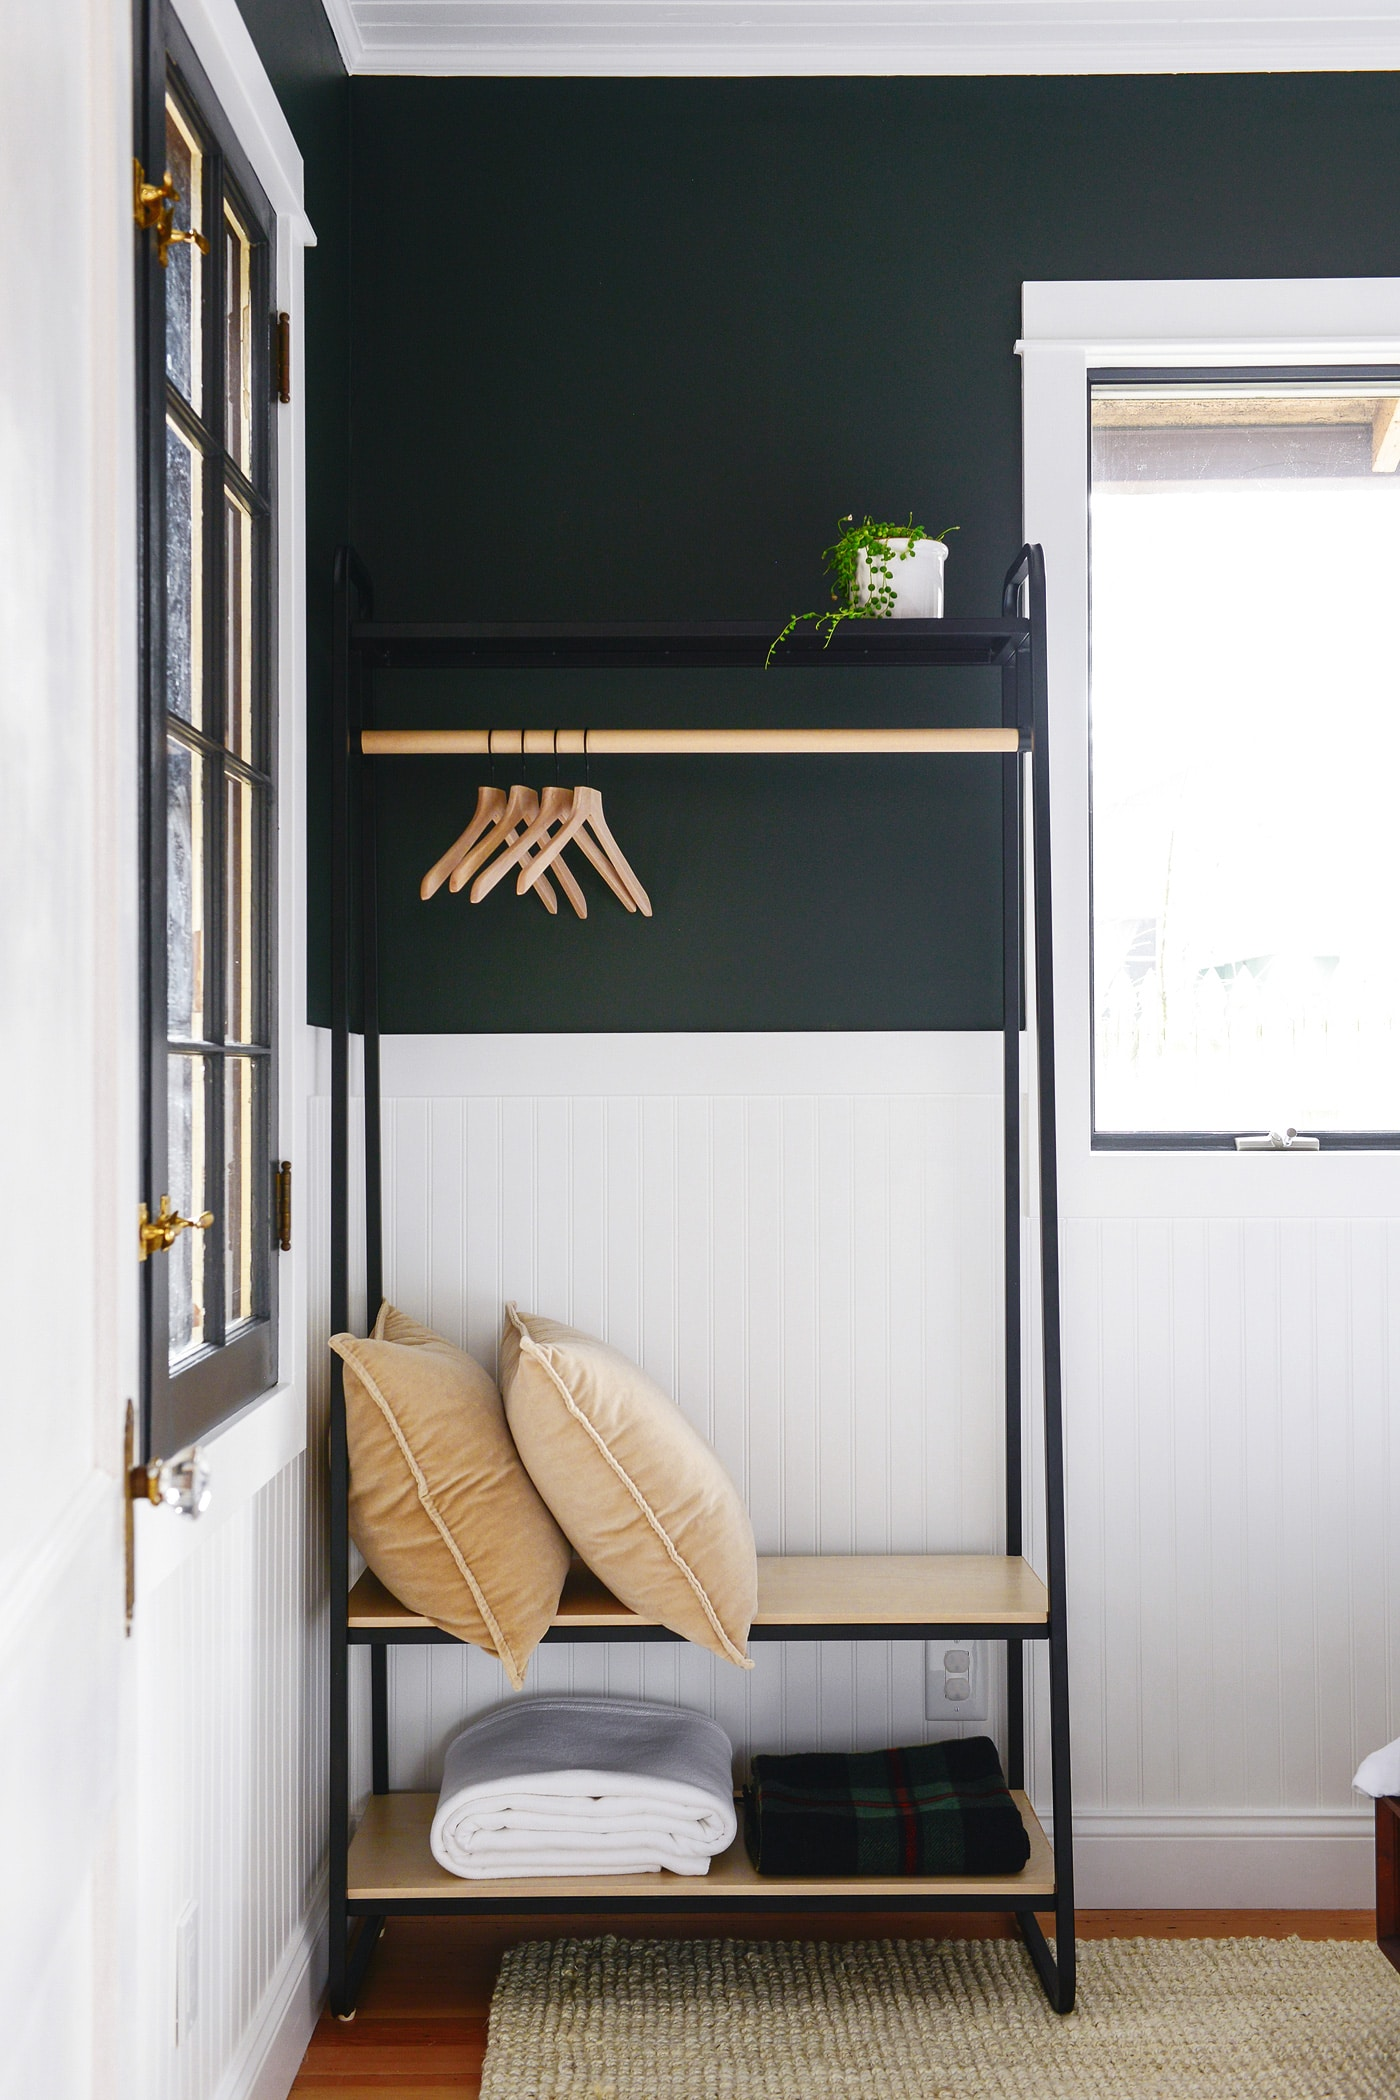 The Guest Room Closet + Modifying Brand New Furniture